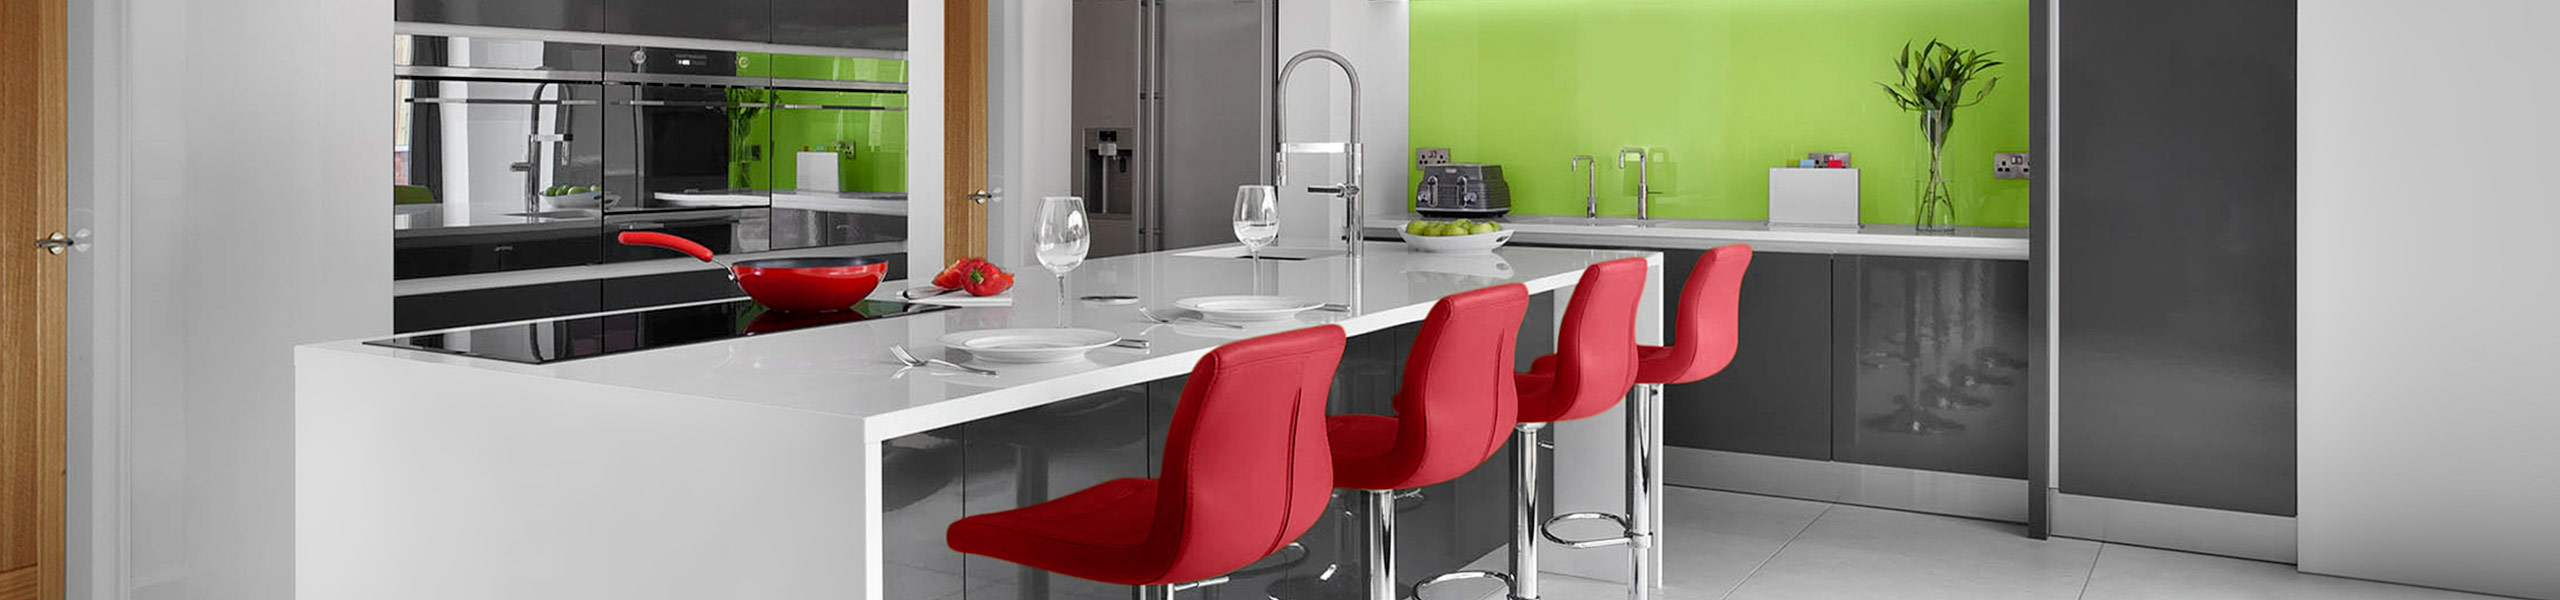 Paradis Bar Stool Red Video Banner